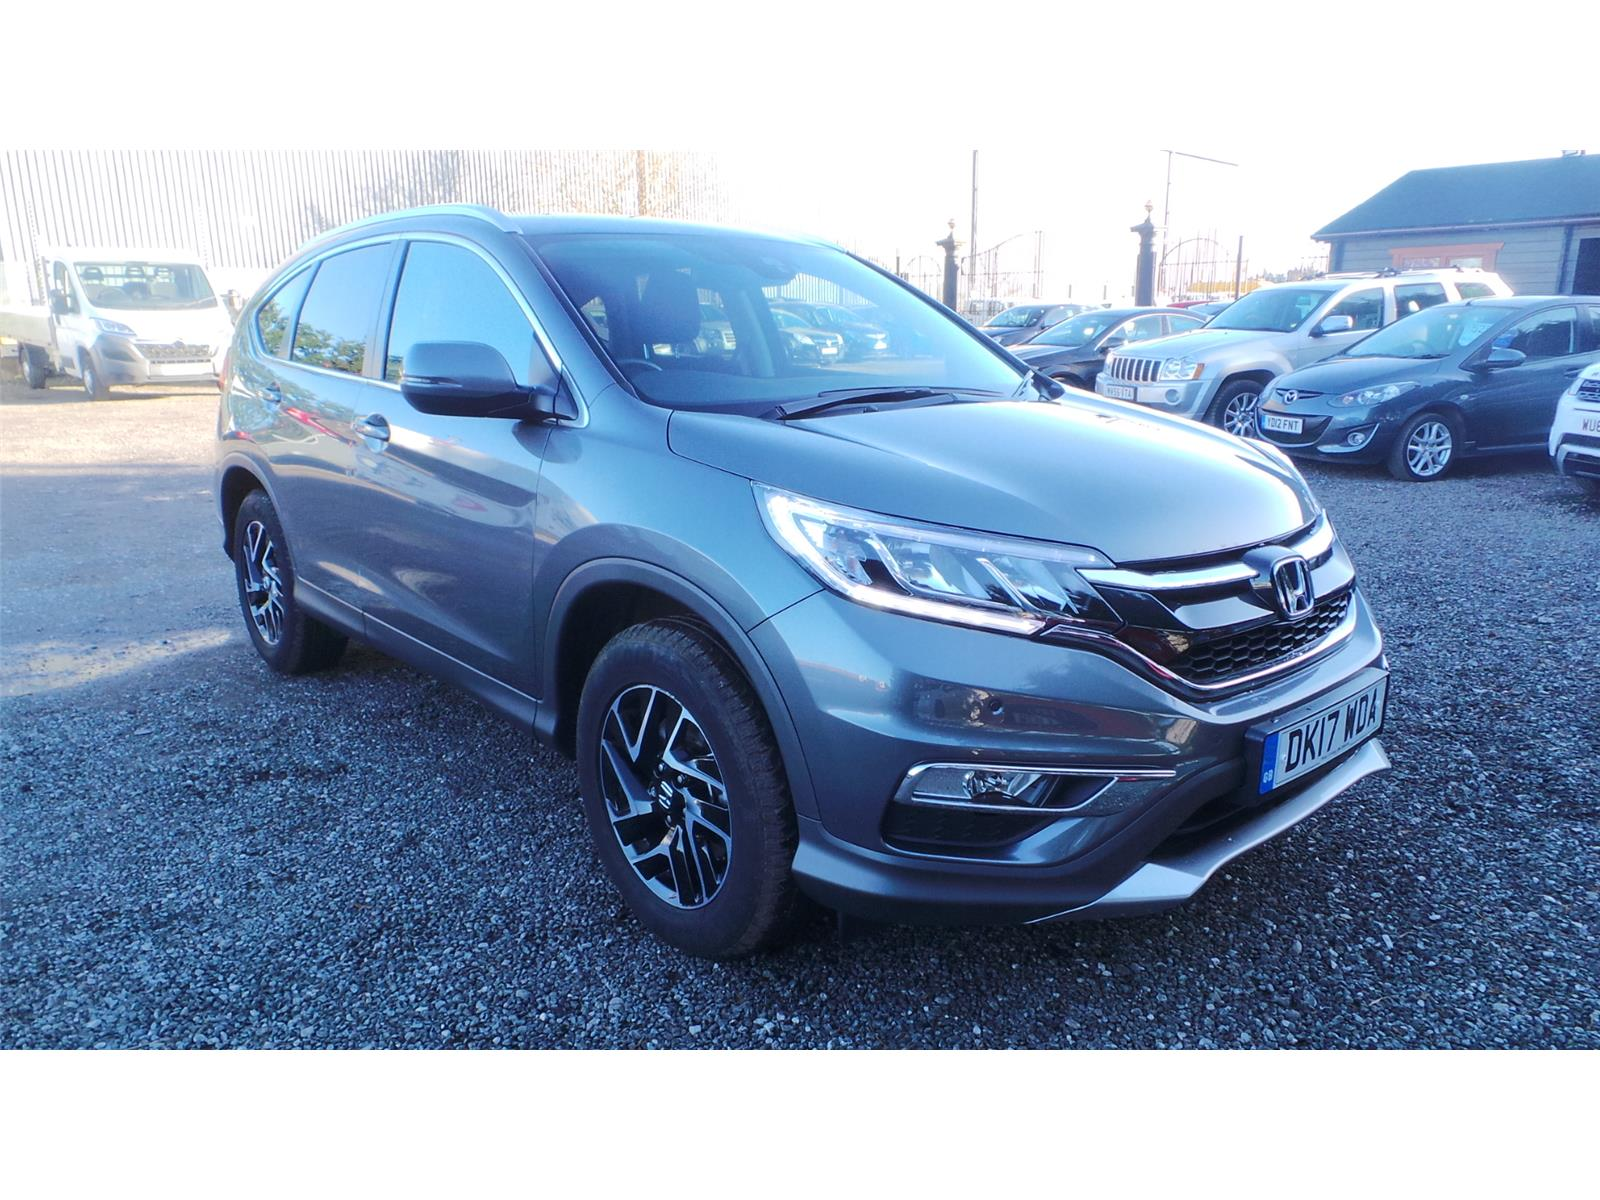 2017 Honda CR-V SE Plus Navi i-DTEC 4WD 1597 Diesel Automatic 9 Speed 5 Door SUV